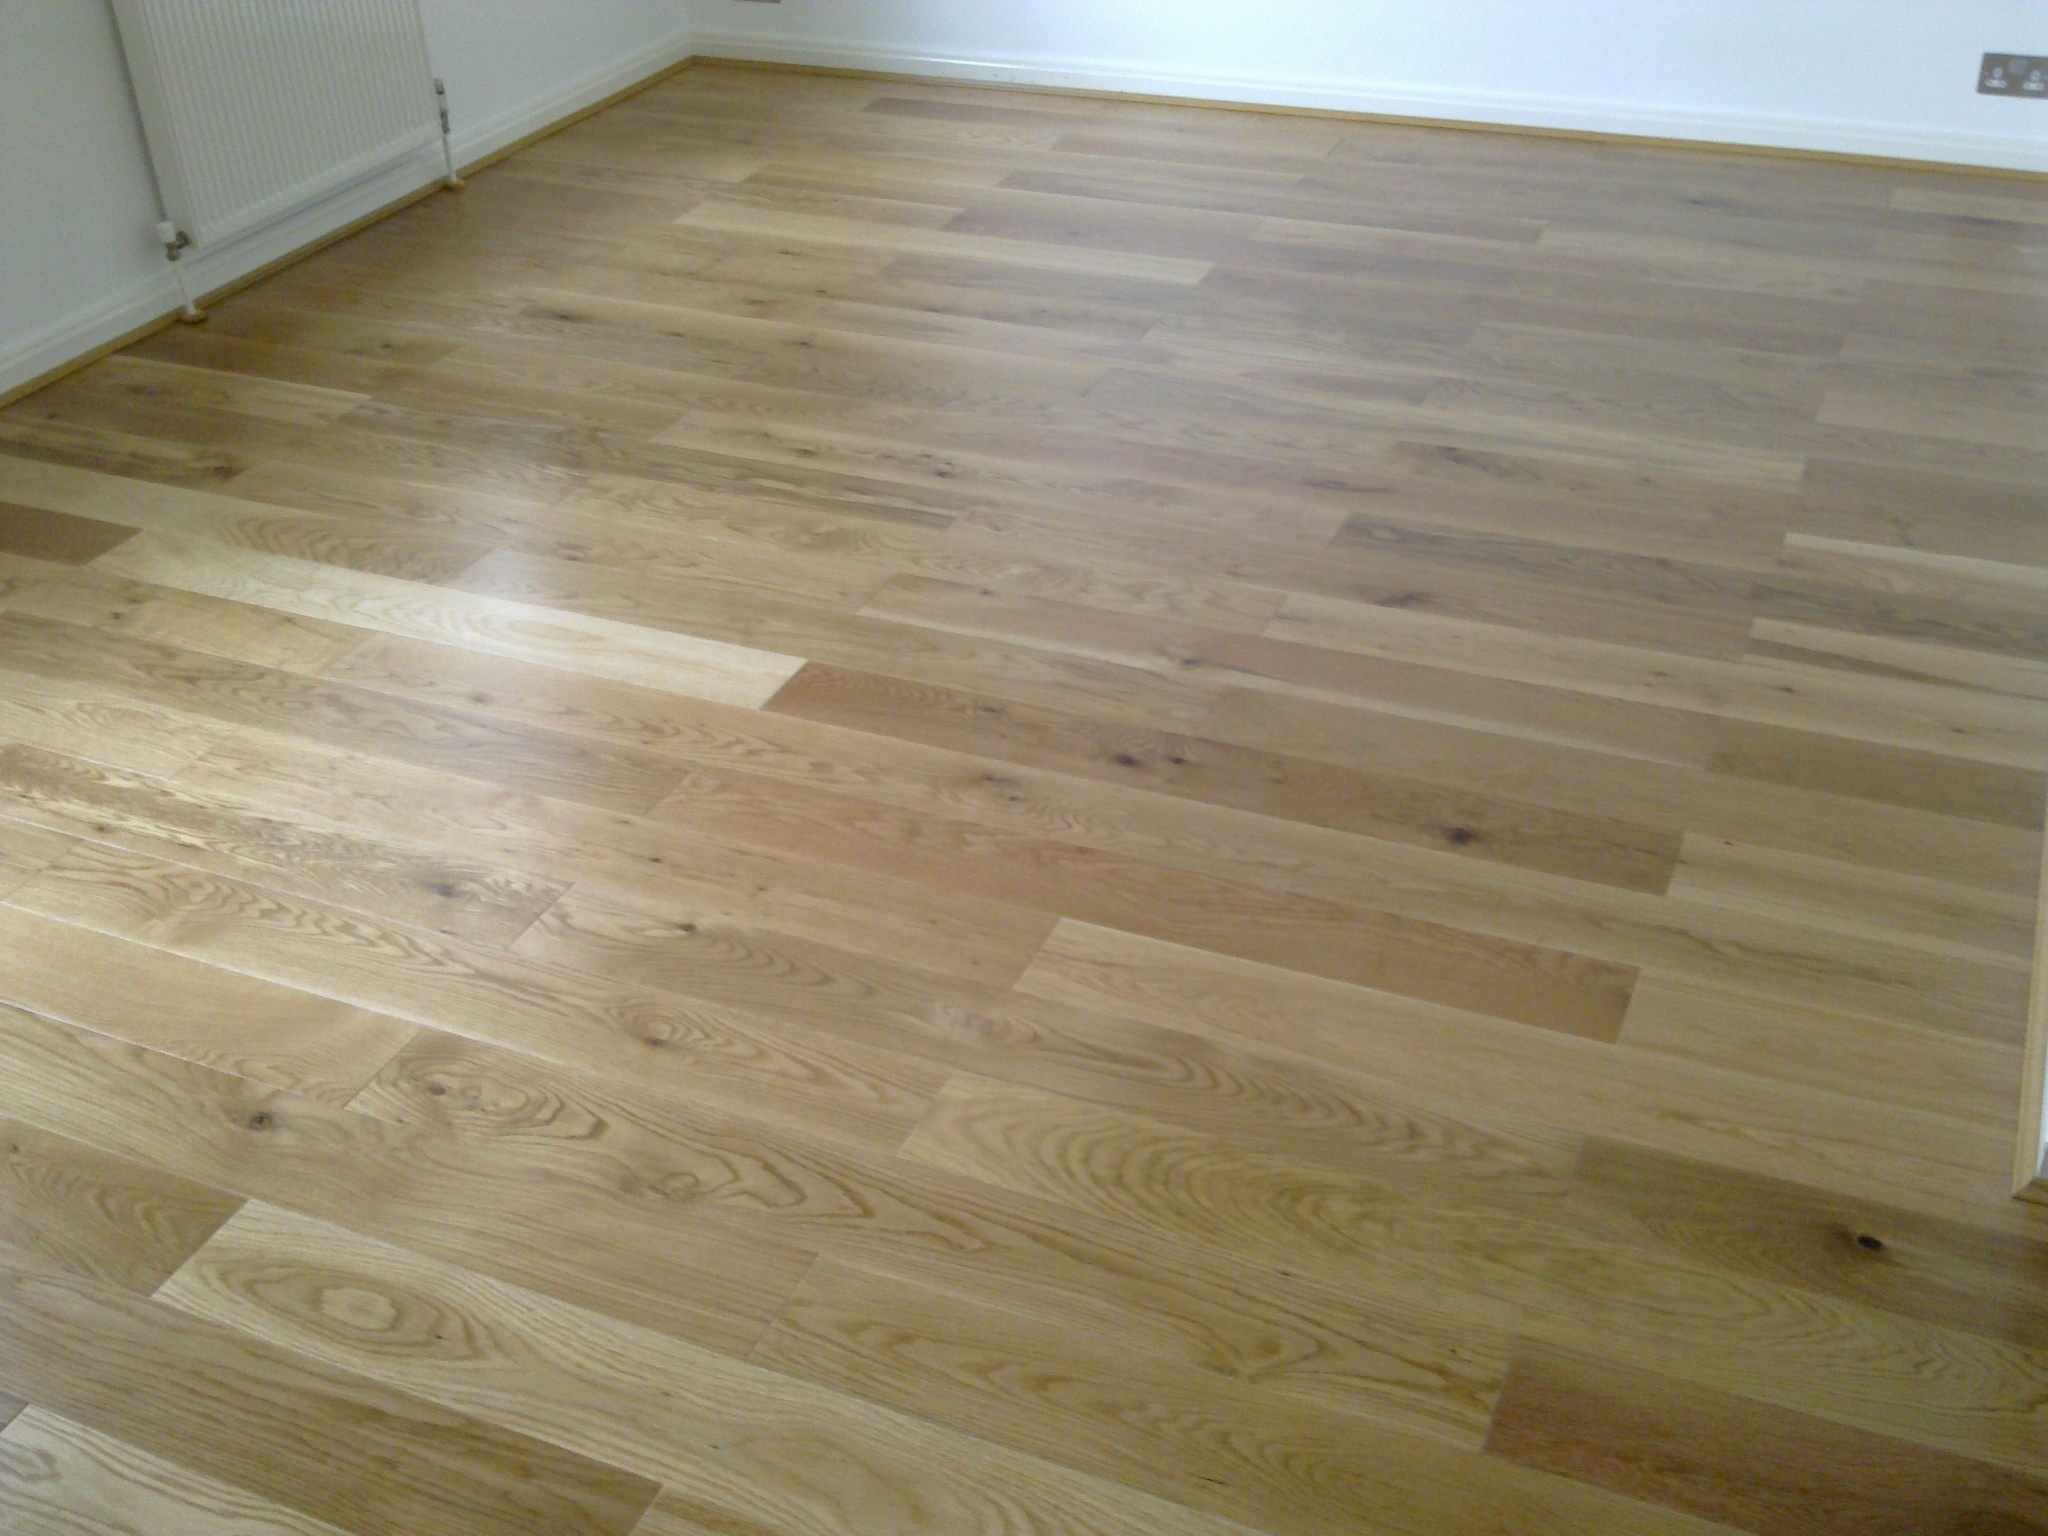 Newly laid solid oak flooring